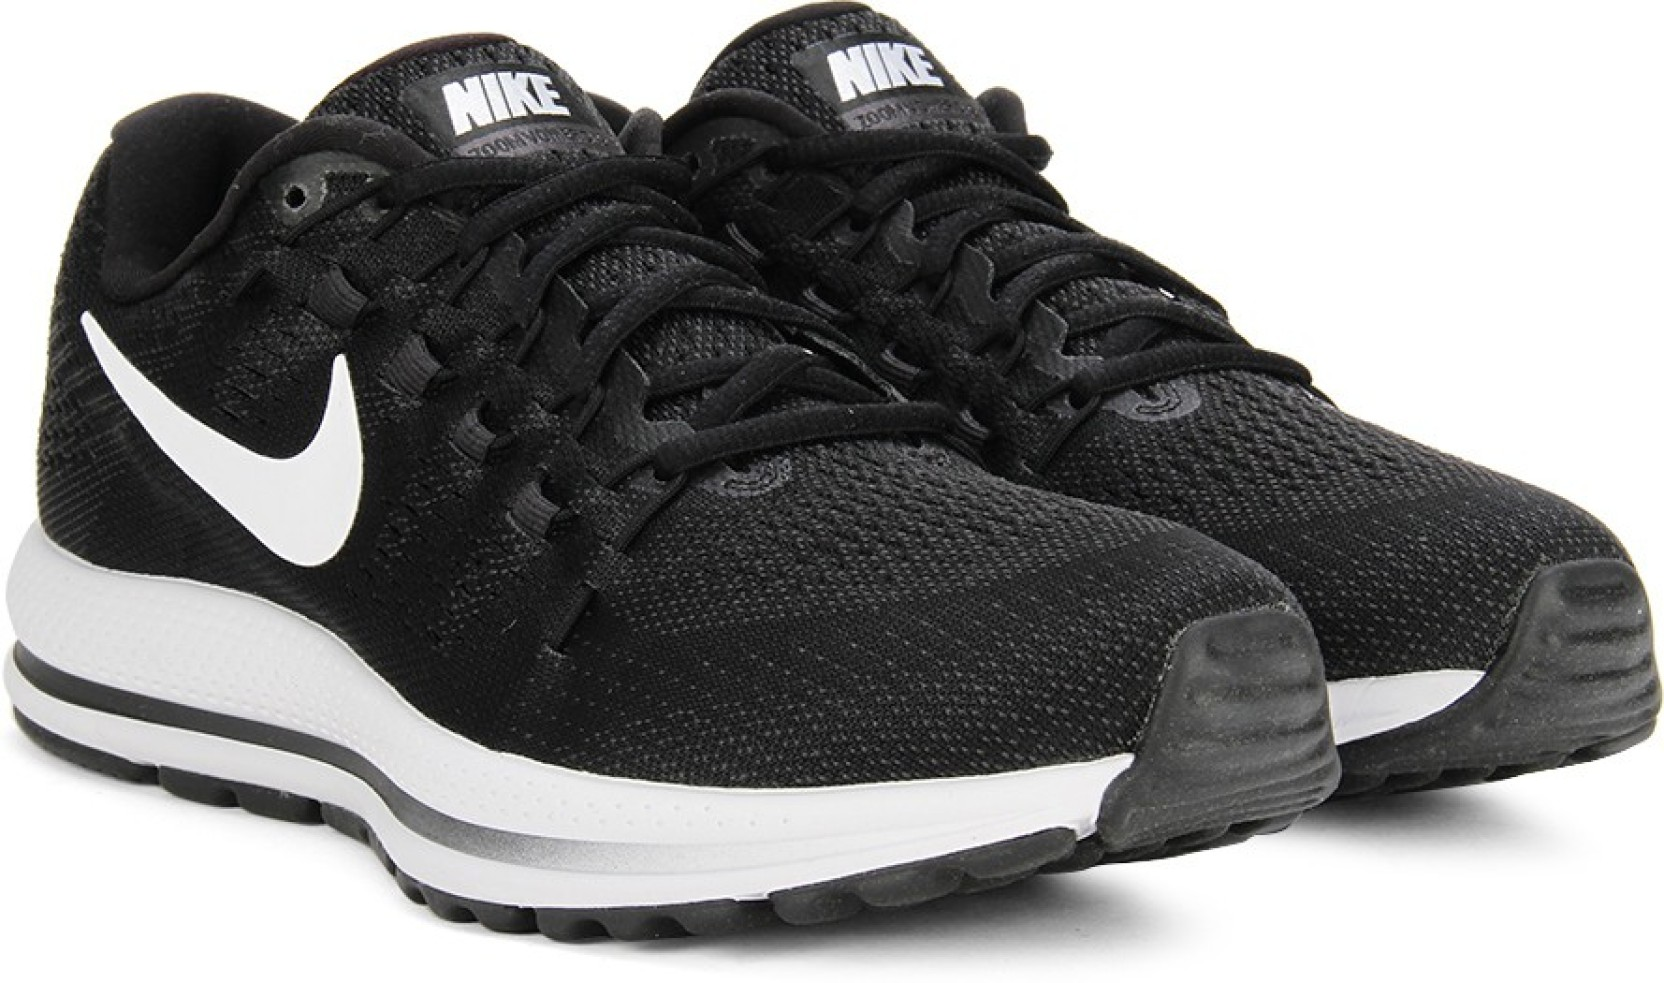 Nike AIR ZOOM VOMERO 12 Running Shoes For Men